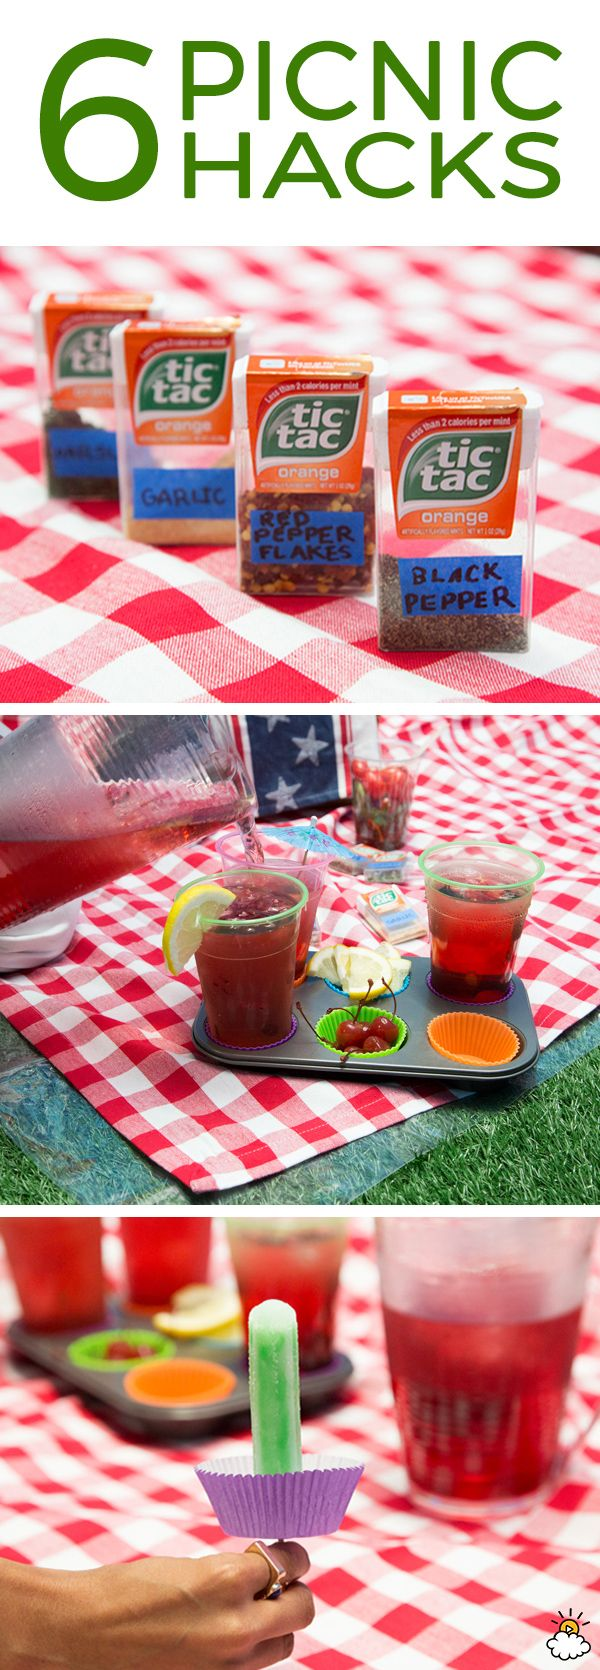 6 Labor Day Picnic Hacks To Ensure You Have A No-Mess, Fun-Filled Time